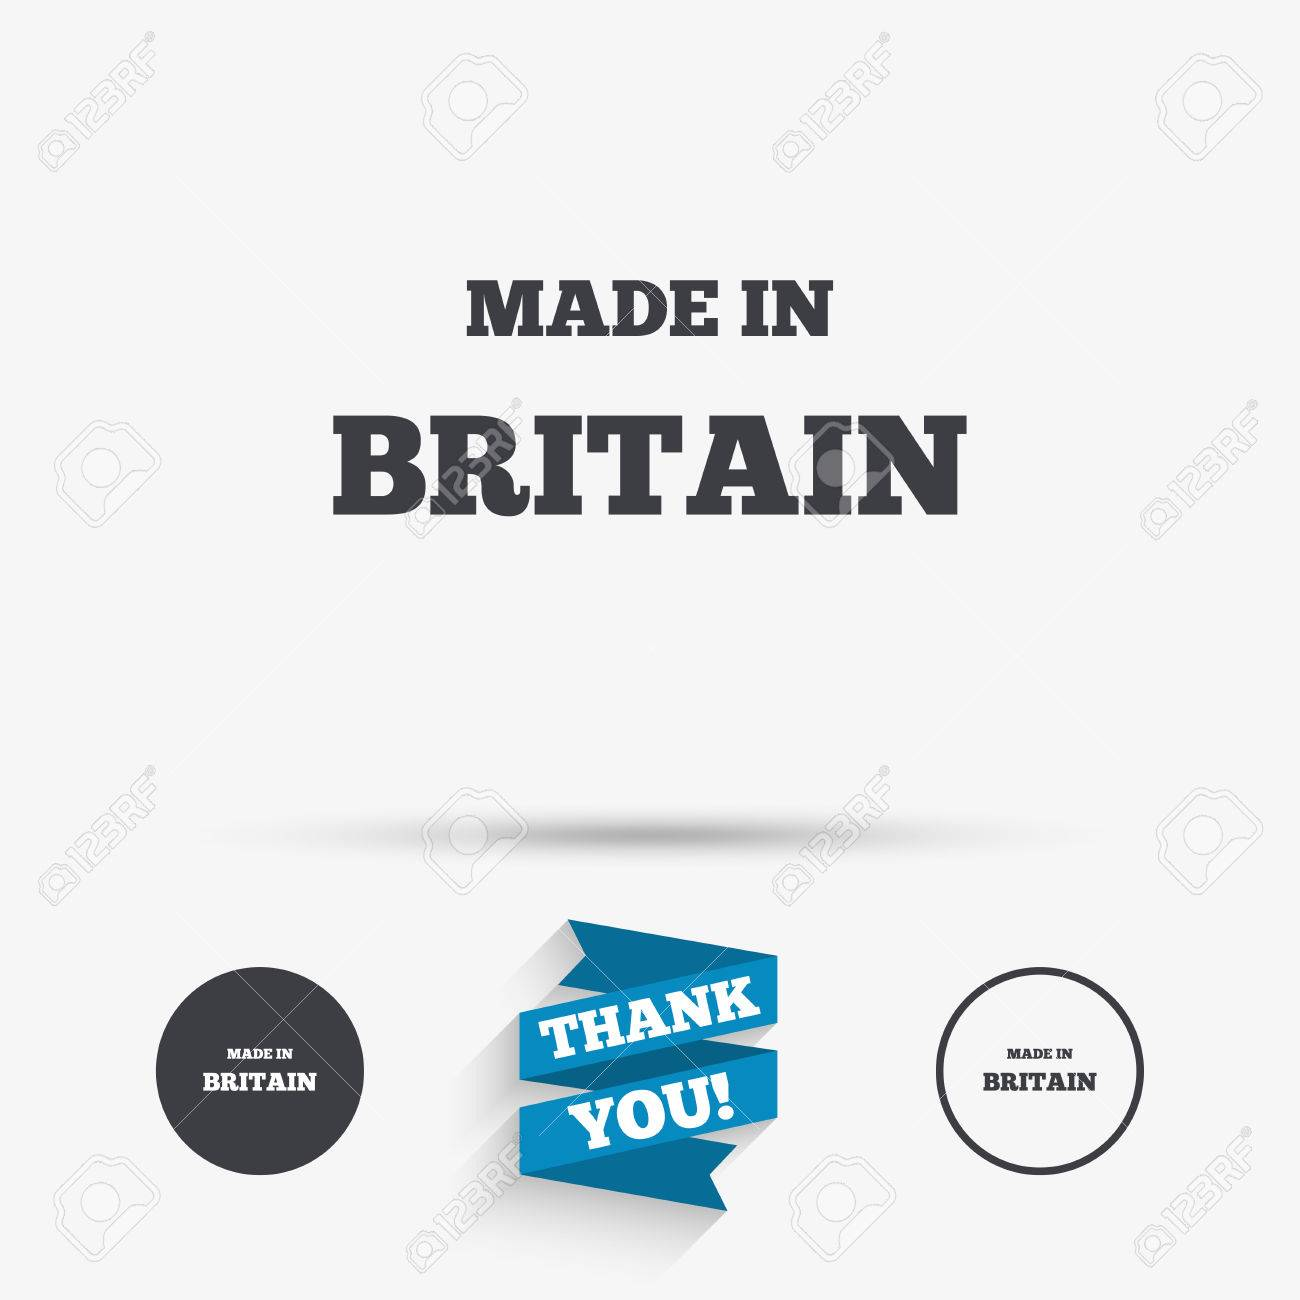 made in britain icon export production symbol product created